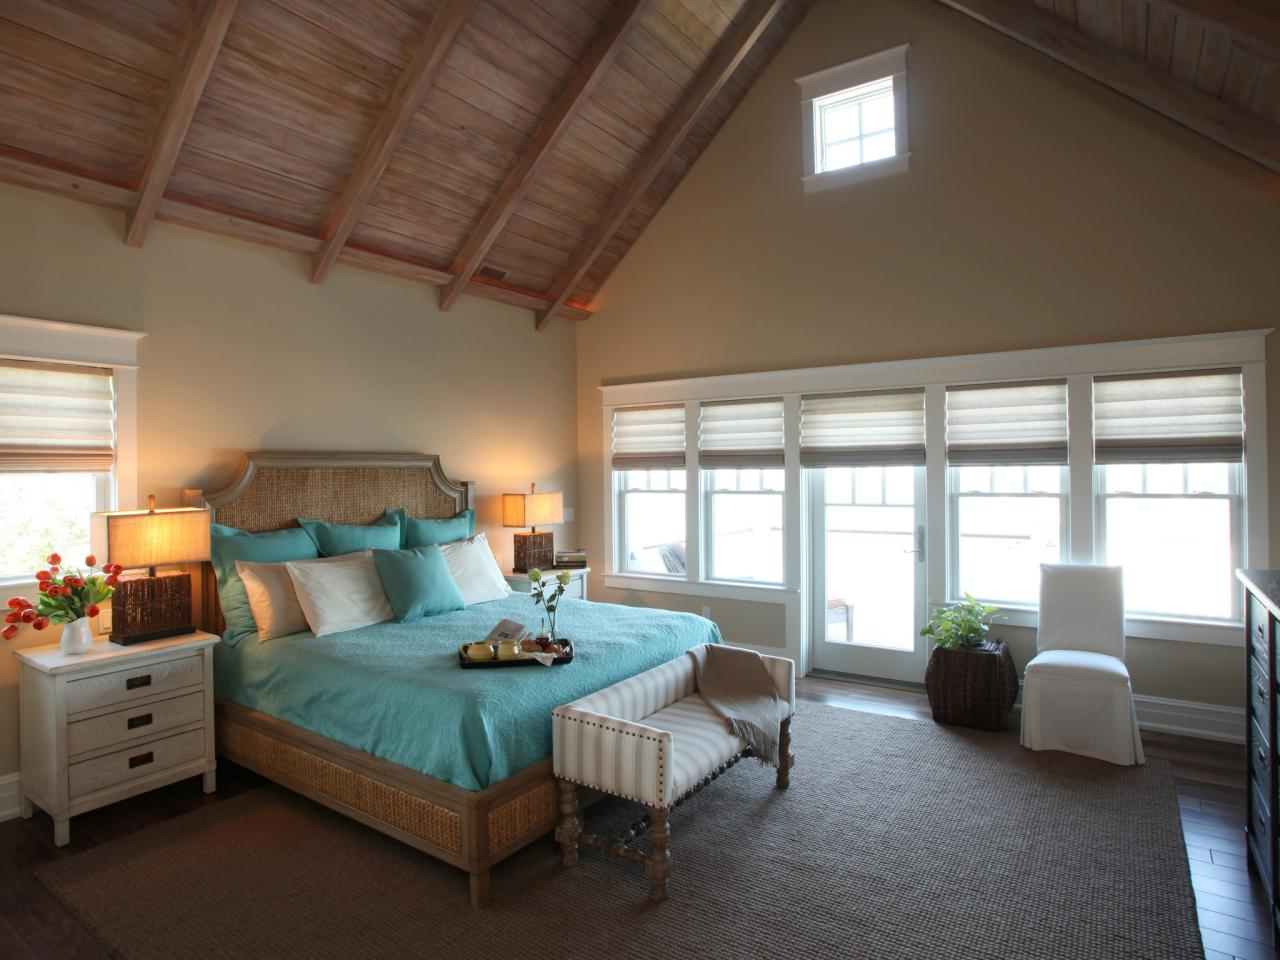 vaulted ceiling expands neutral cottage bedroom with the exception of